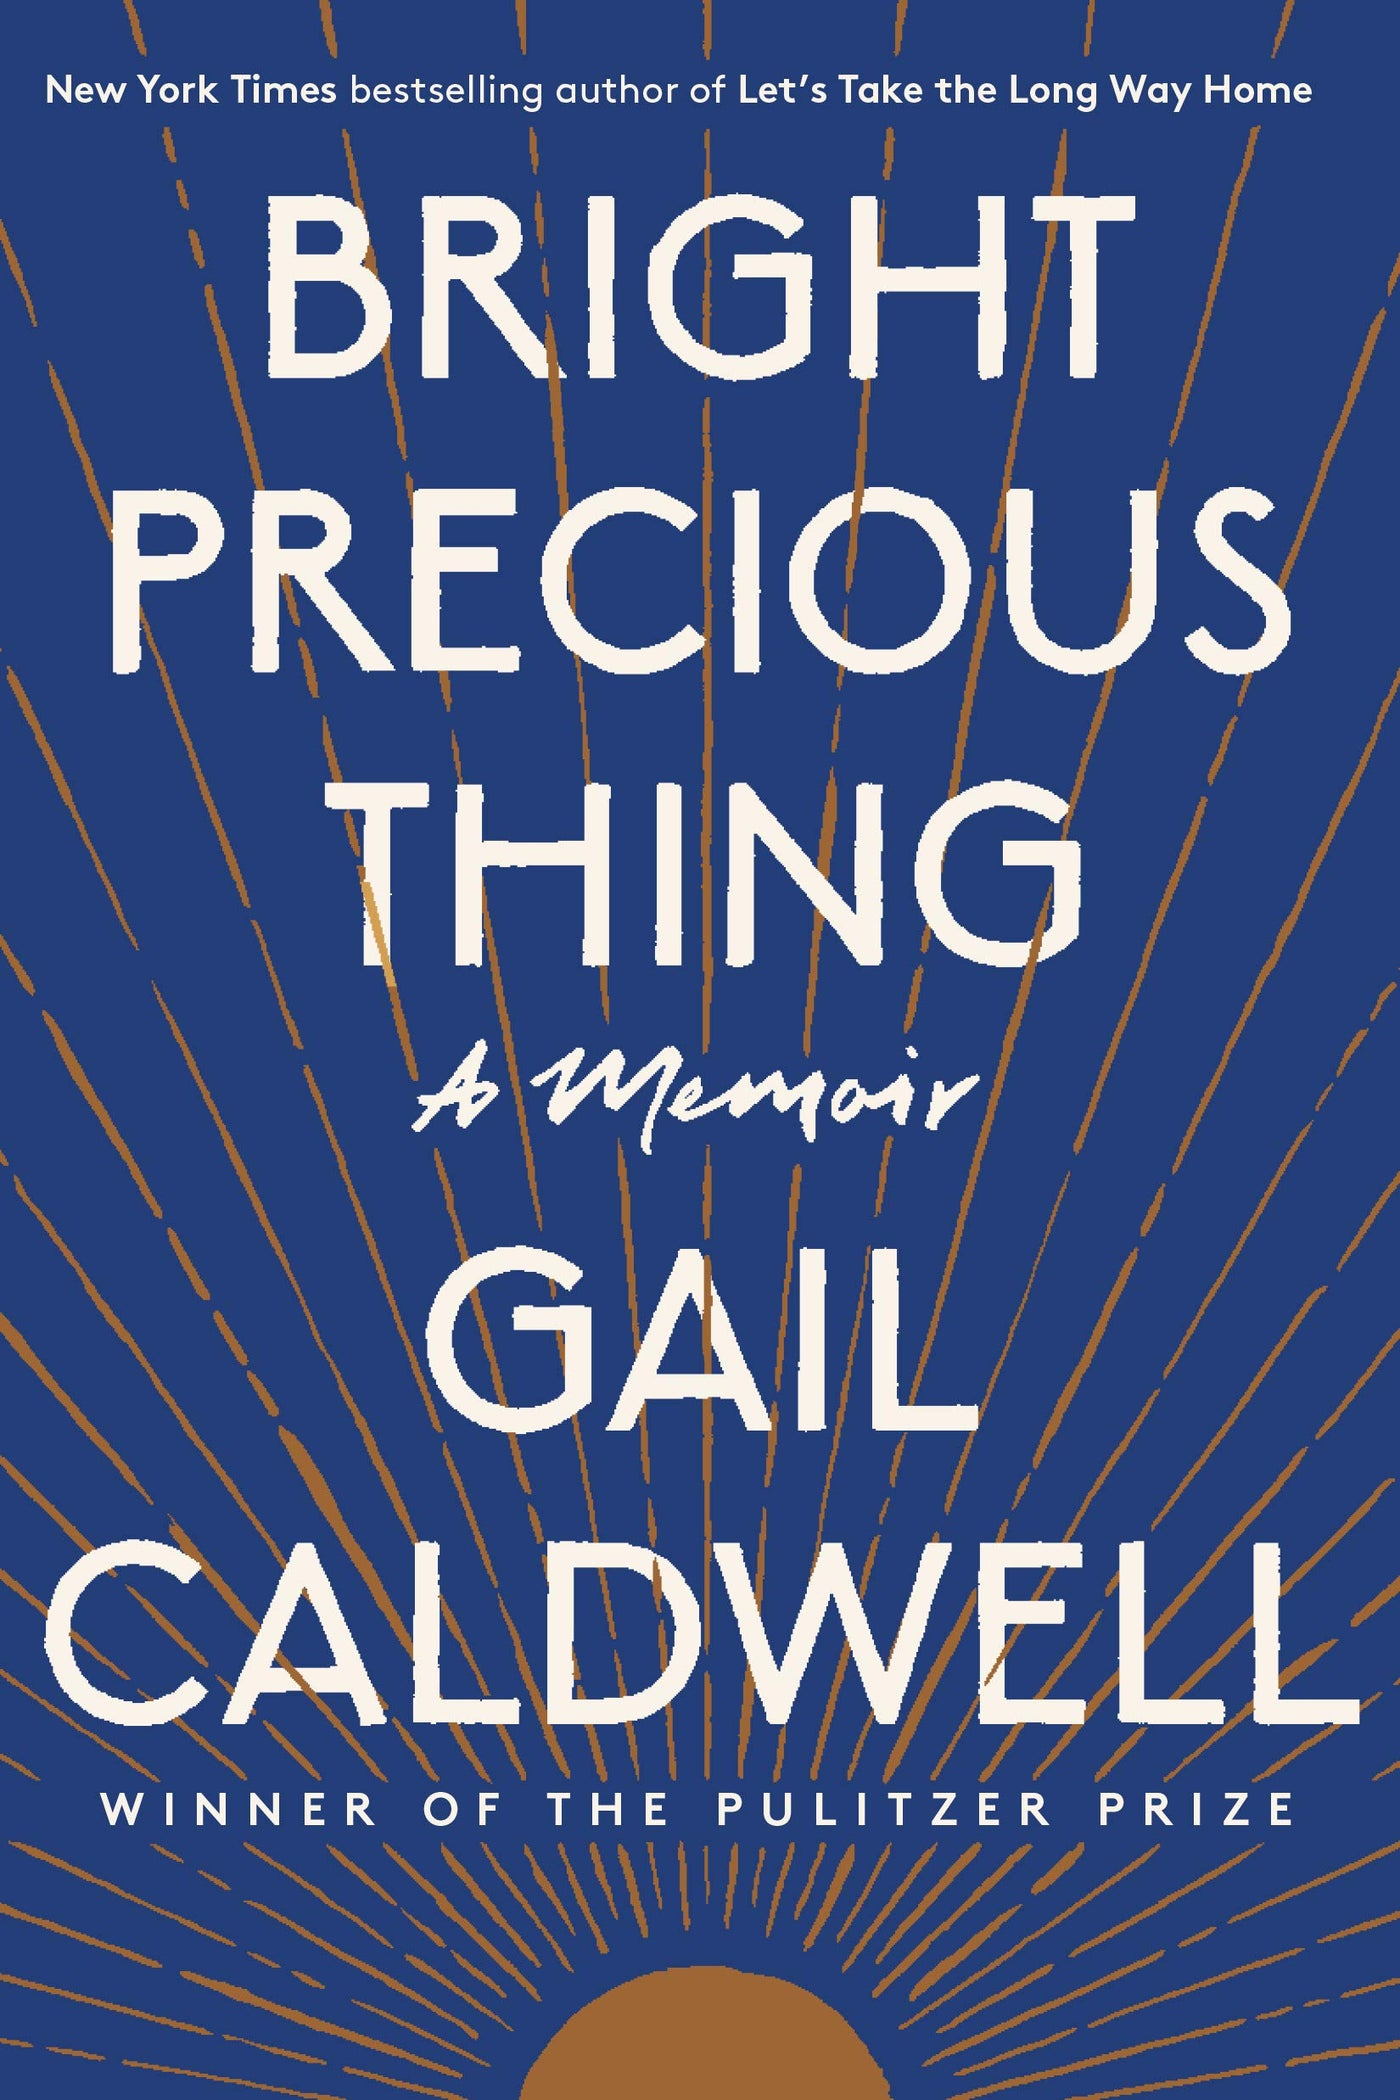 Bright Precious Thing: A Memoir by Gail Caldwell